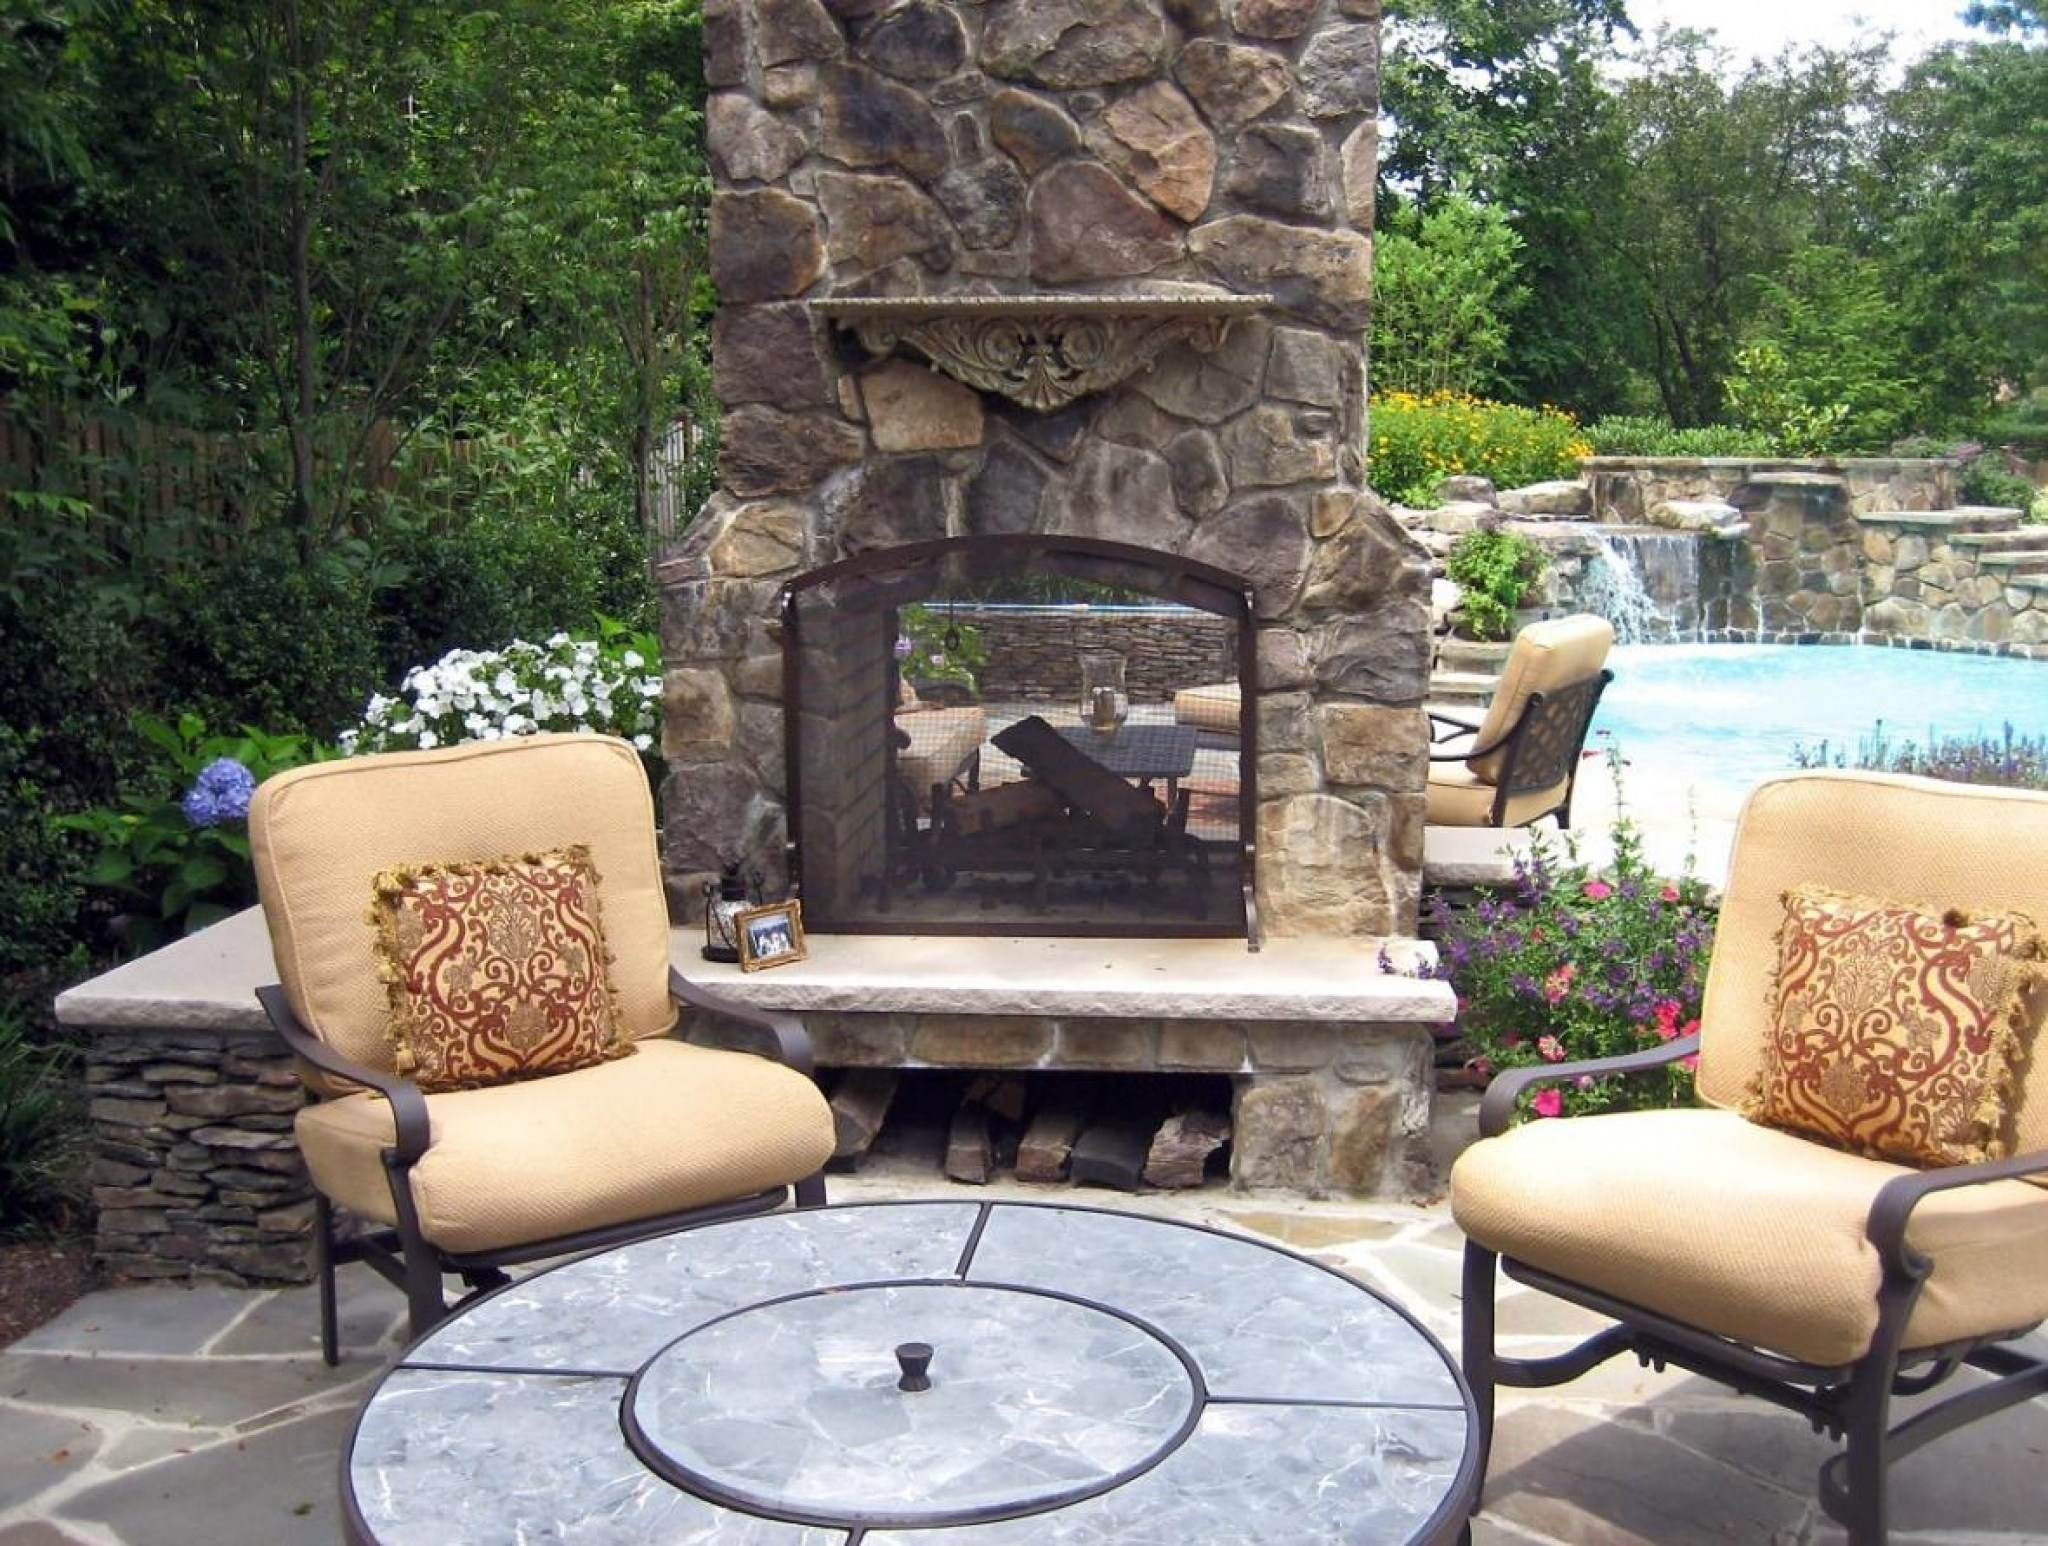 Special Large Clay Chiminea Outdoor Fireplace